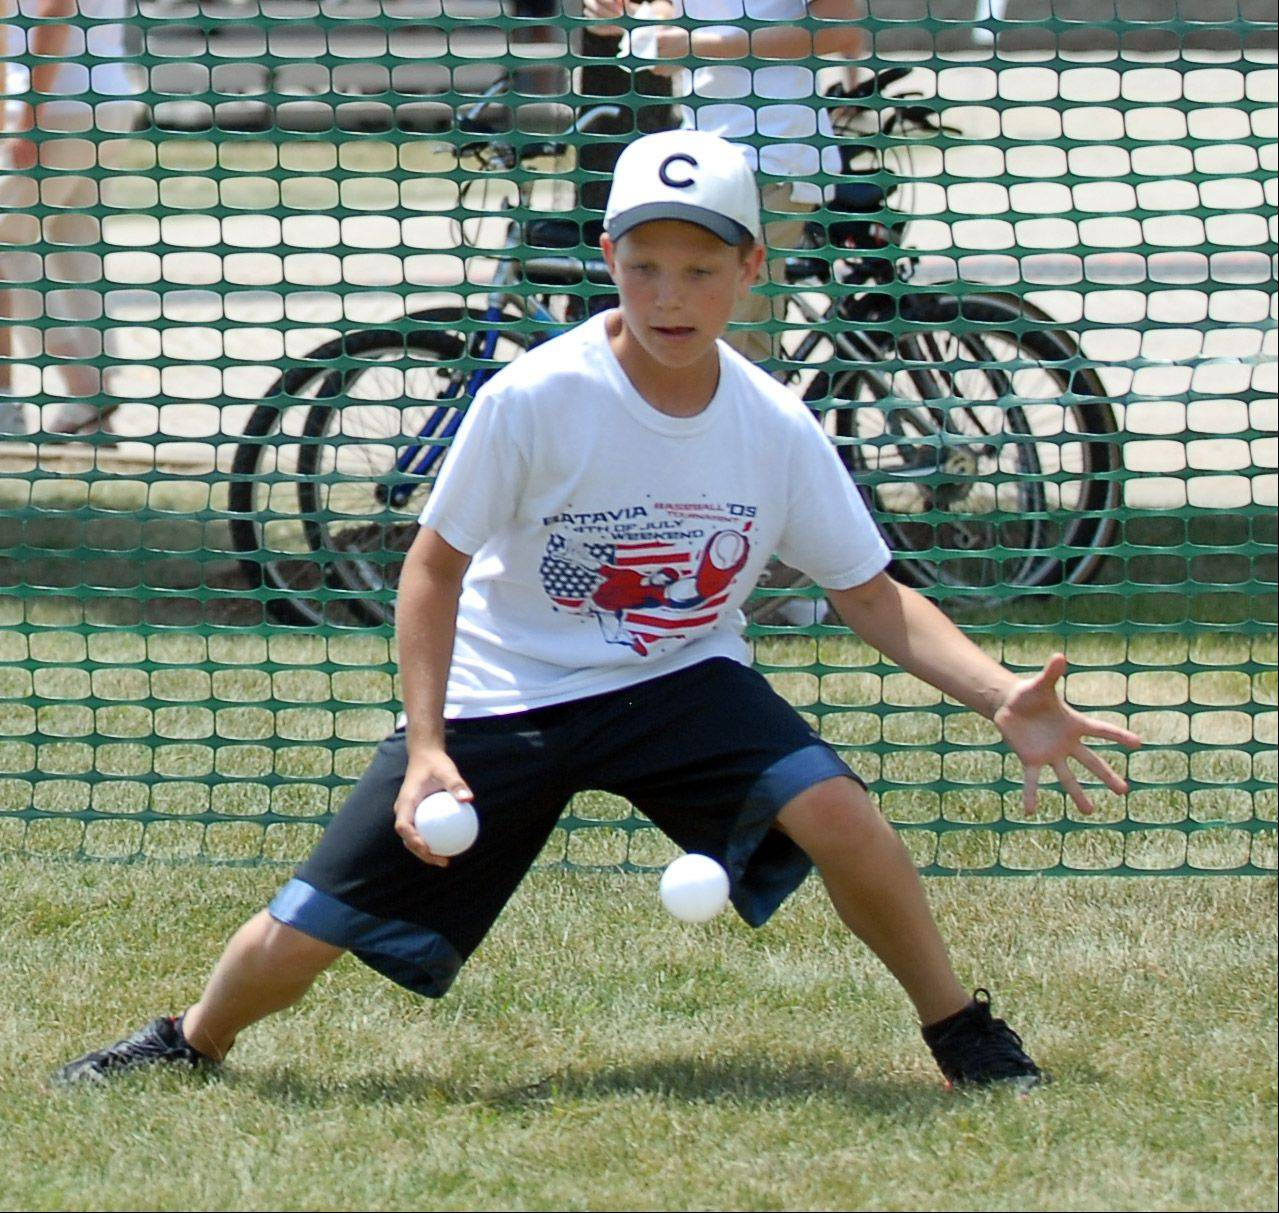 On Saturday, Matthew Henkel, 13, of Batavia catches a ball during the wiffle ball tournament at Batavia's Windmill City Festival.